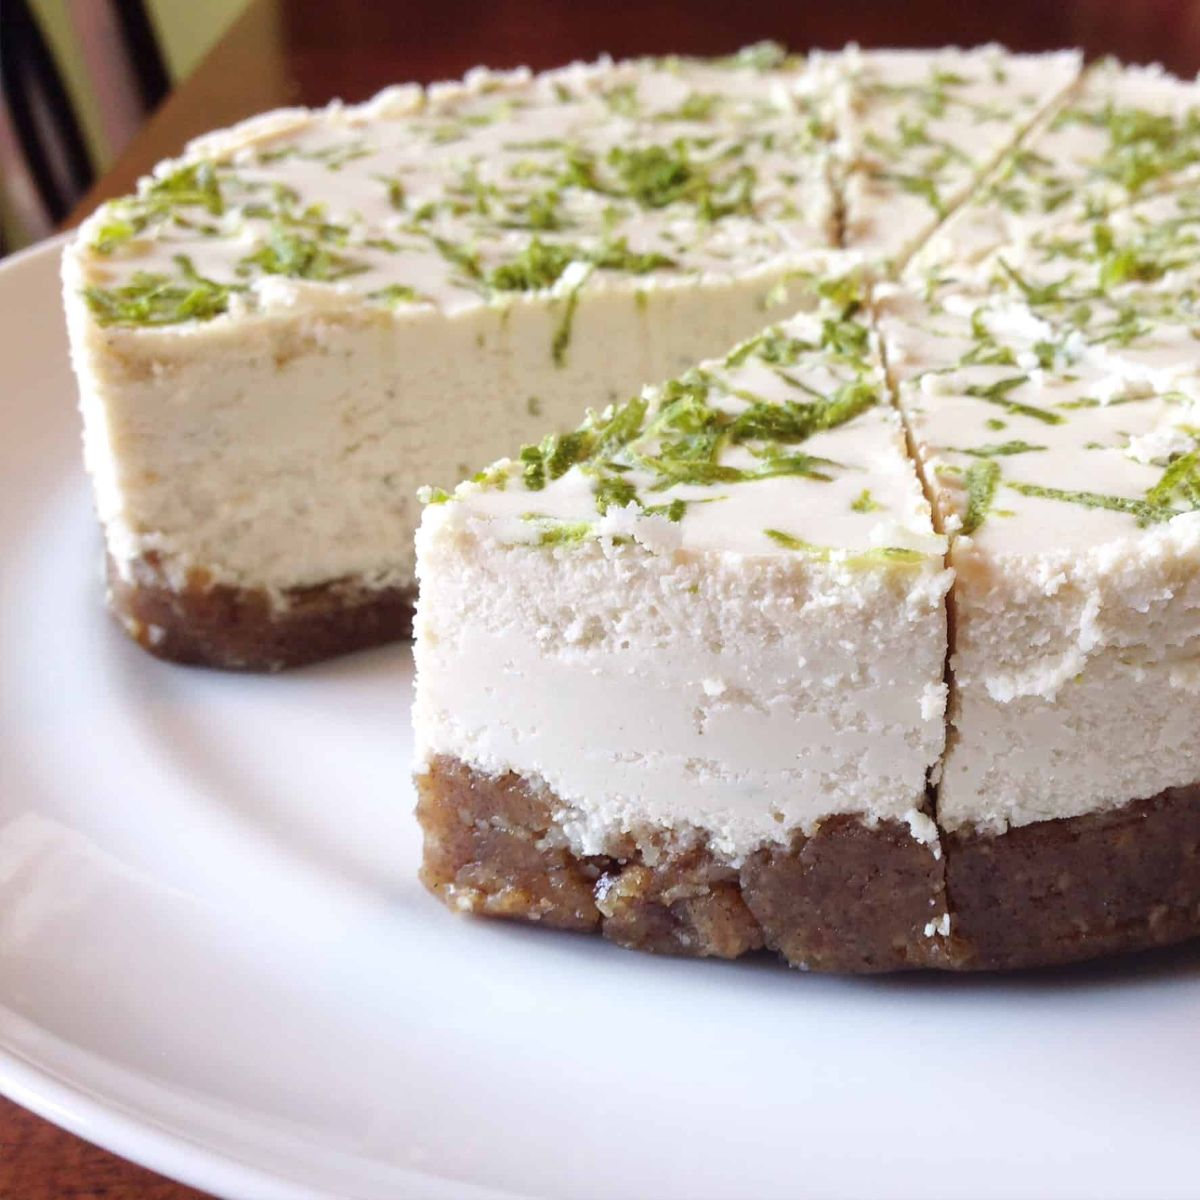 a key lime cheesecake cut into segments, with one missing. Lime zest is sprinkled on top